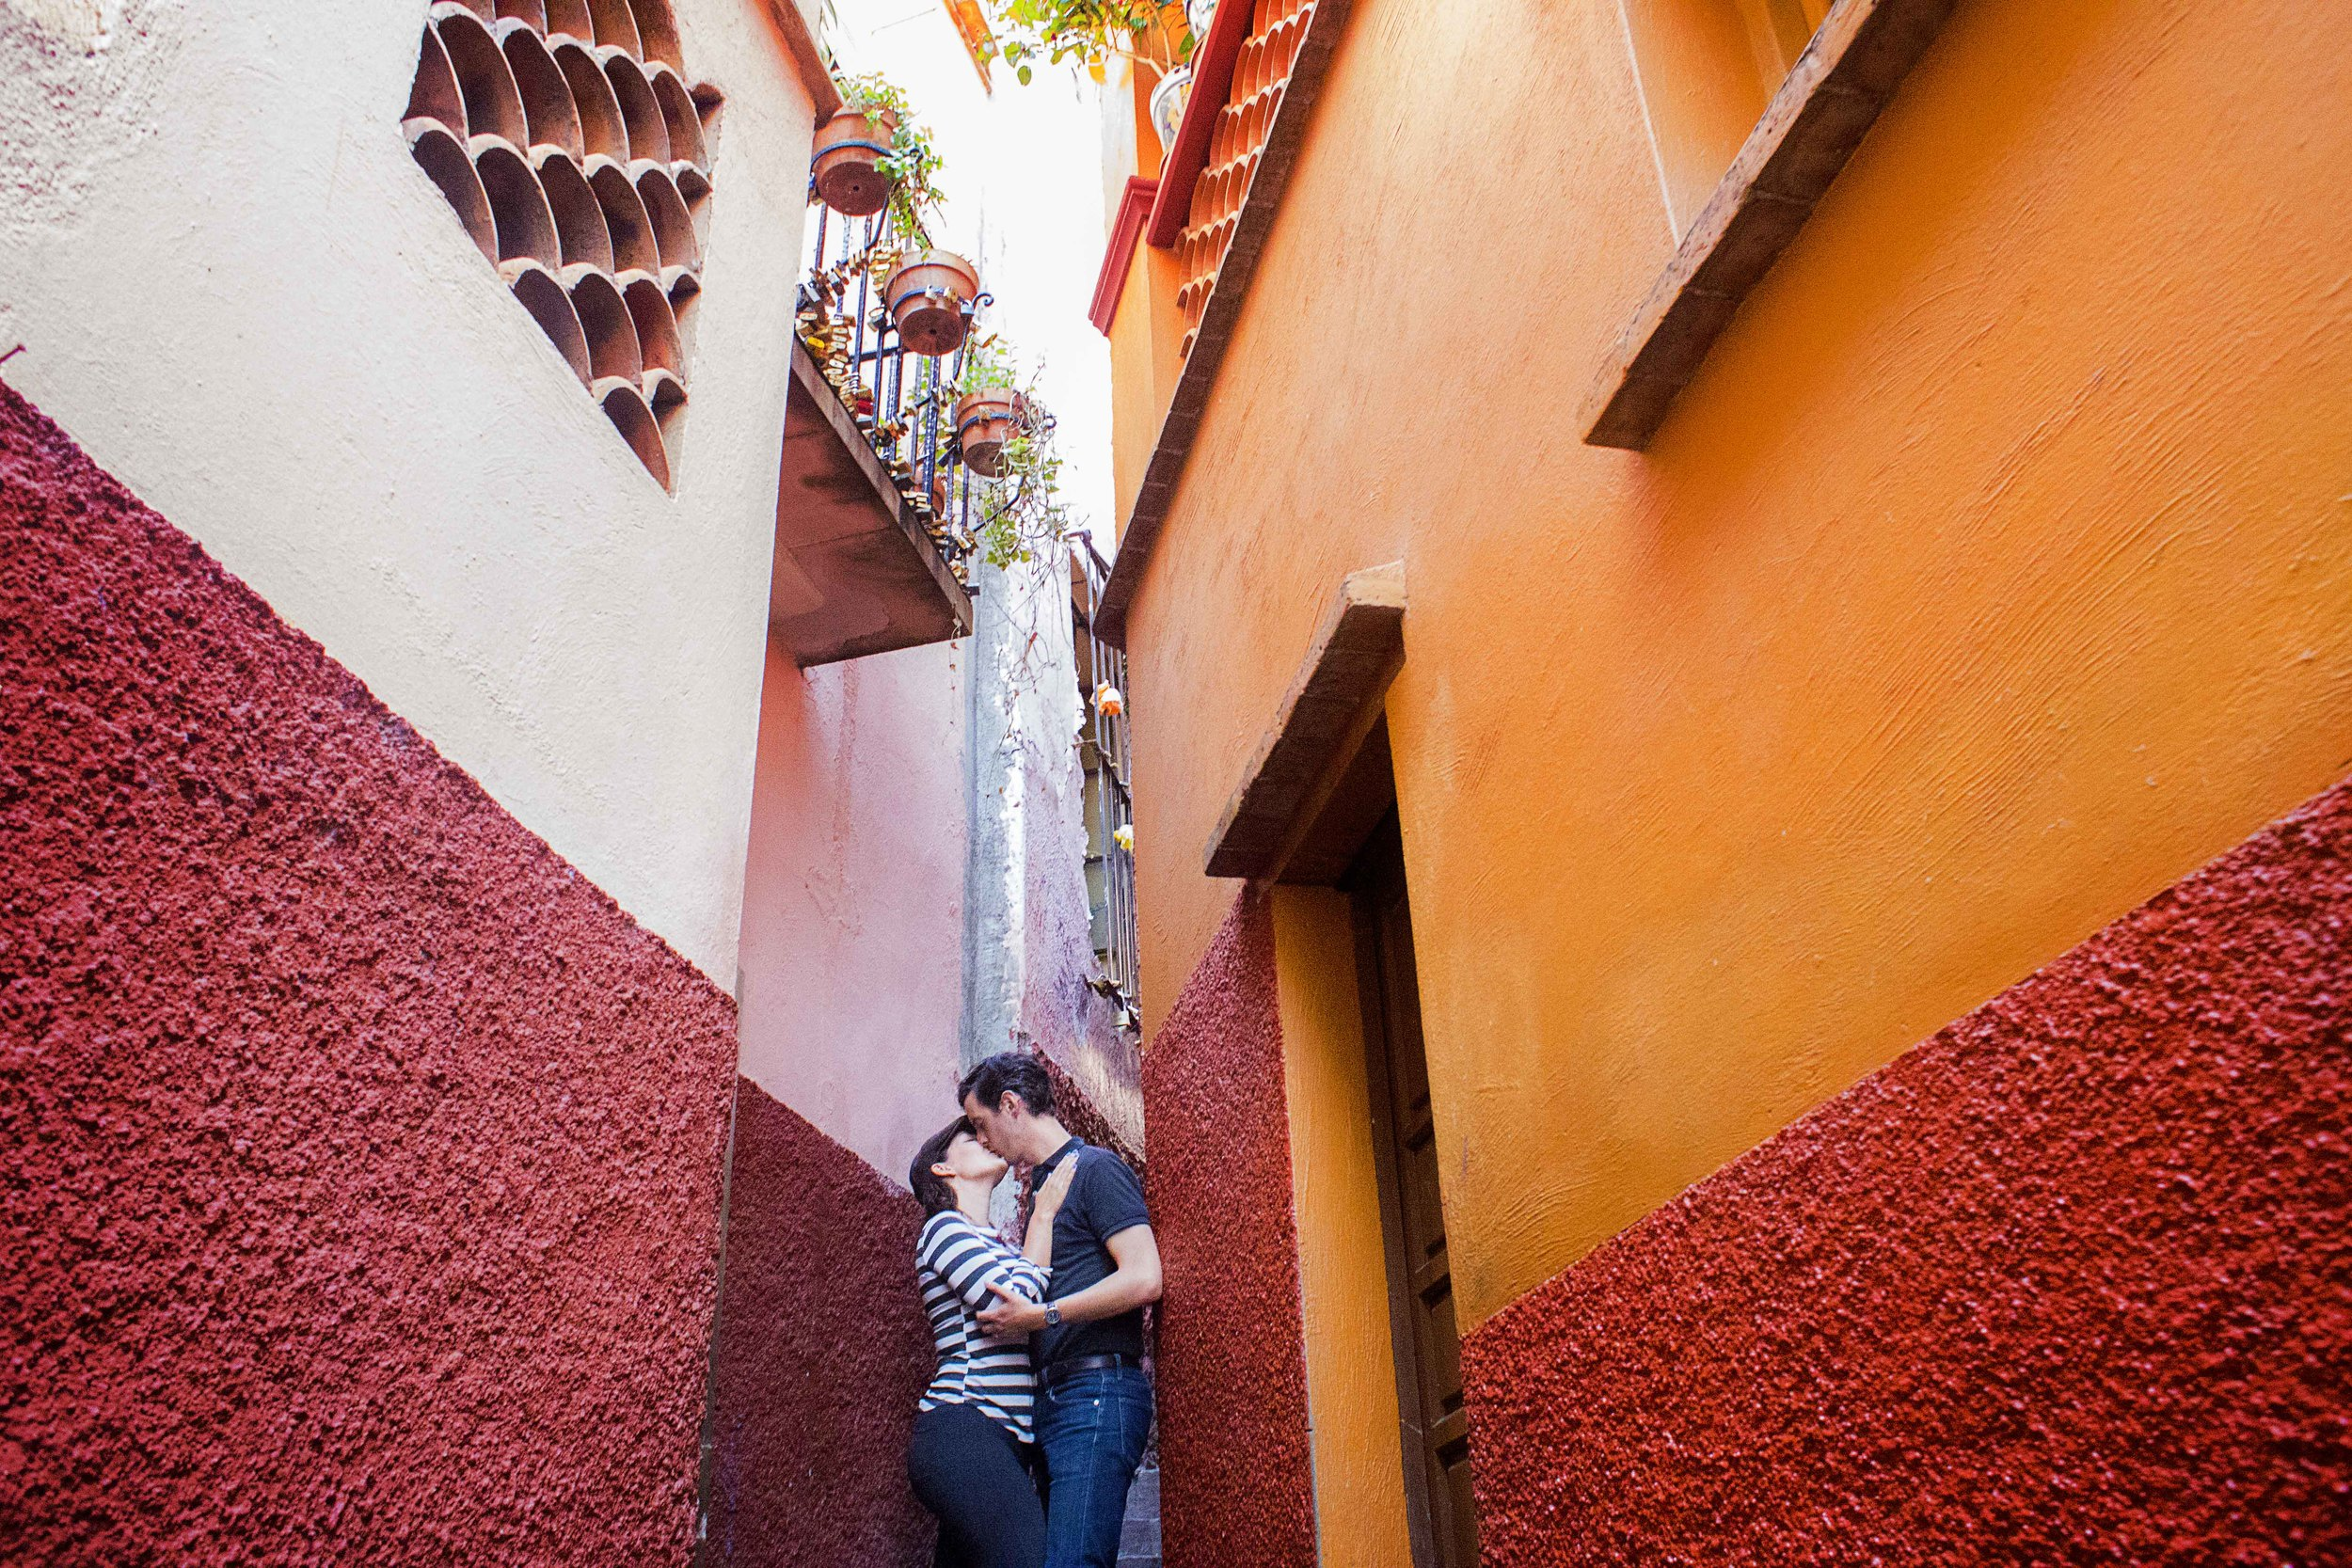 Day 90 - Guanajuato, Guanajuato, Mexico   A star-crossed lovers tale is told here at the Alley of the Kiss or  Callejon del Beso .  This alley is so narrow that one might accidentally kiss another when passing through but that's not how it got it's name...  Doña Carmen  and Don Luis were deeply in love but her father was a violent and jealous man.  Unable to see  Doña Carmen, he purchased the house across hers so they can use the balconies to steal a few kisses.  Sadly, the tale ends tragically when they are found out by her father who kills his only daughter out of rage.  Since we are legally wed,  I hope this stolen kiss is approved by my father :)